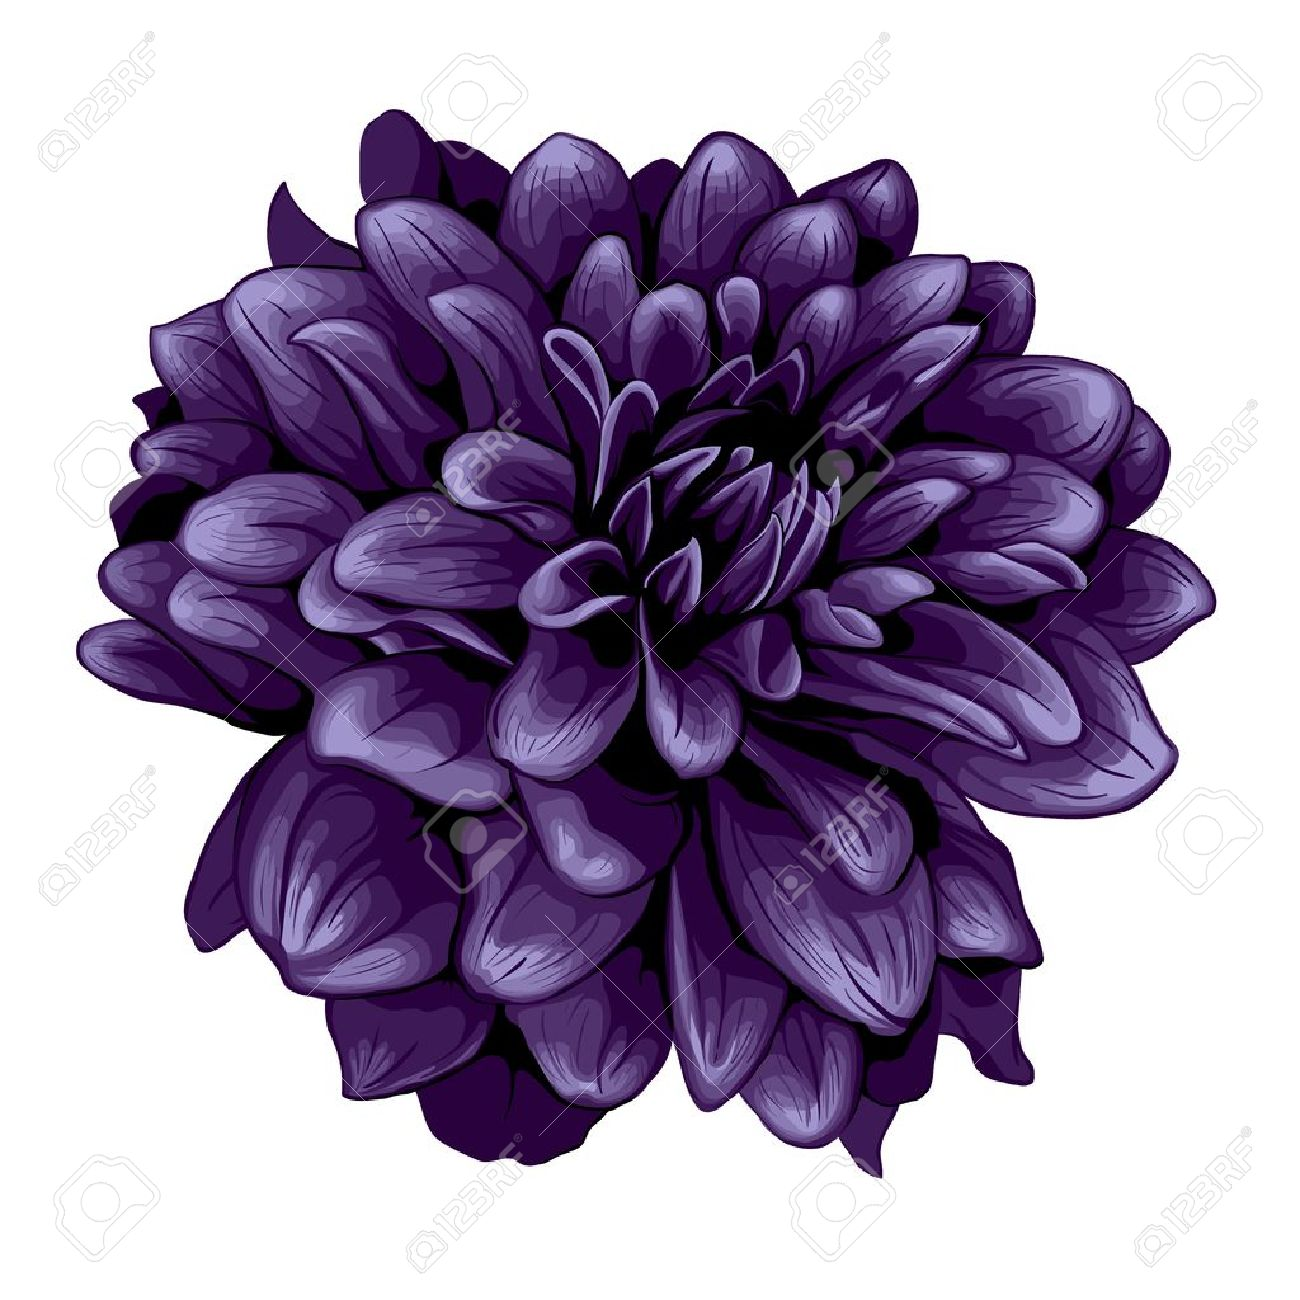 Dahlia illustration Stock Vector - 17695398